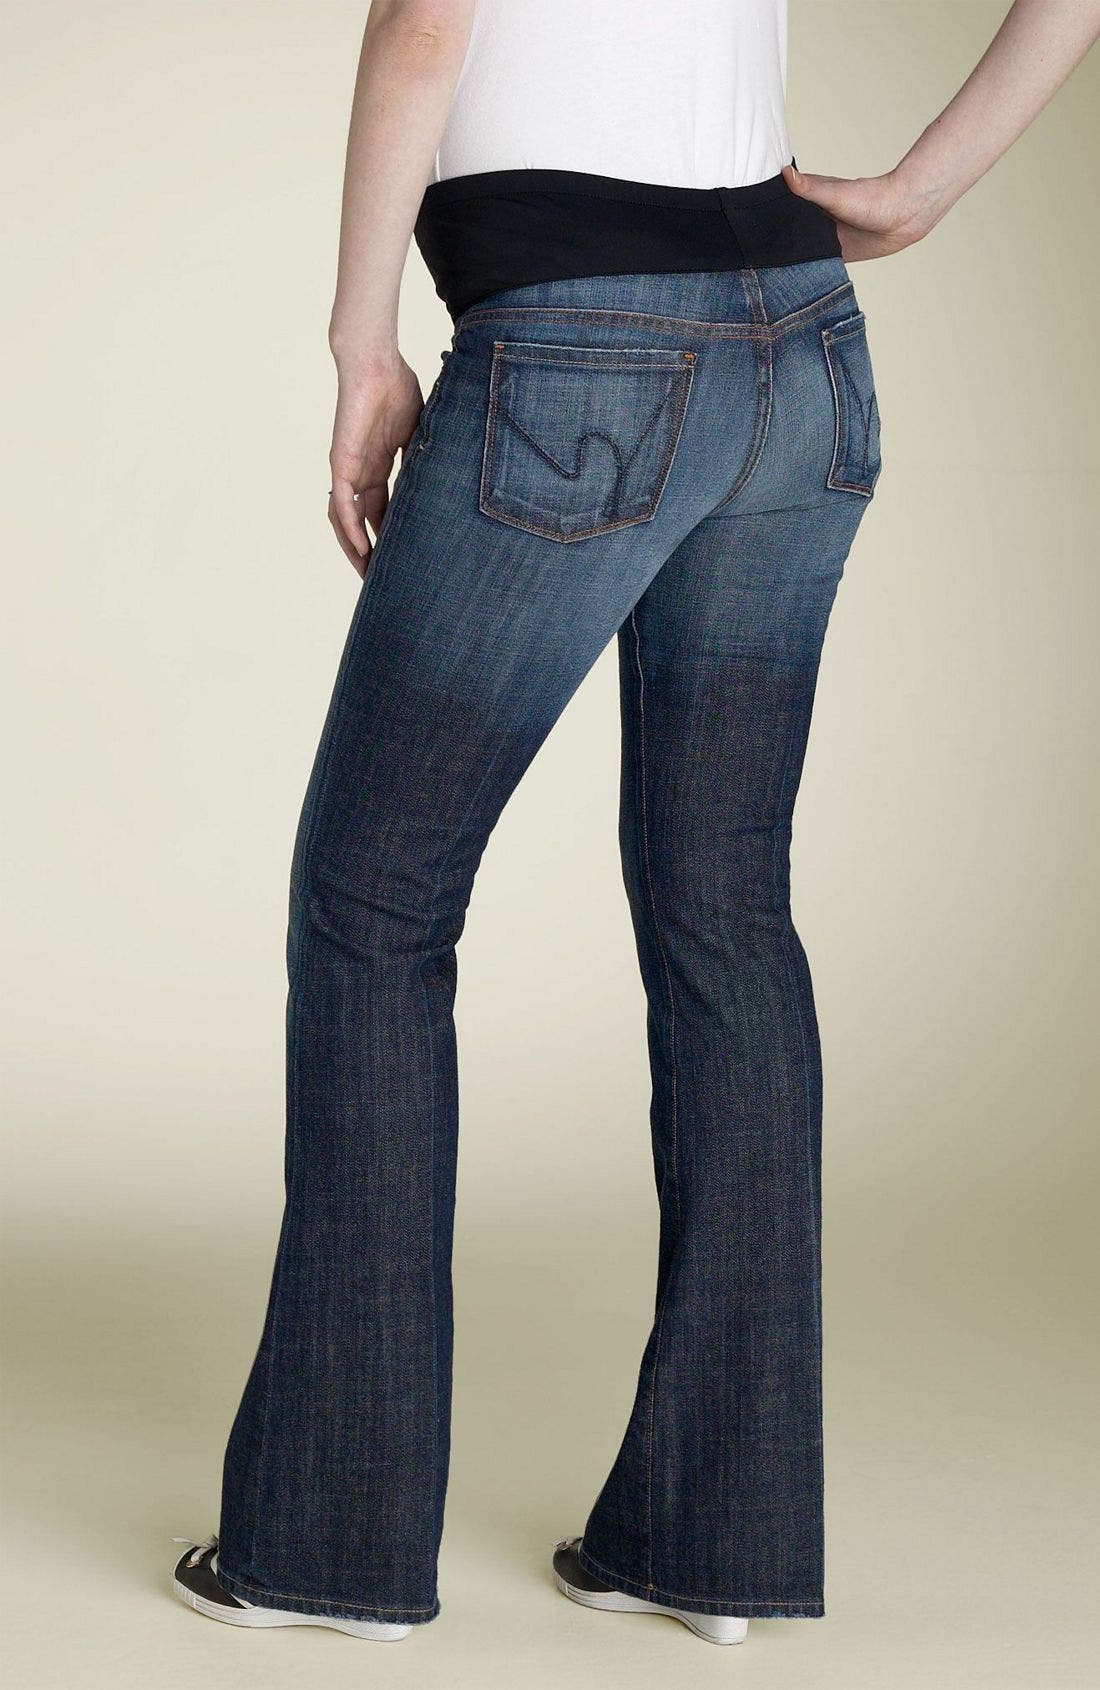 Main Image - Citizens of Humanity 'Kelly' Maternity Bootcut Stretch Jeans (New Pacific Blue)